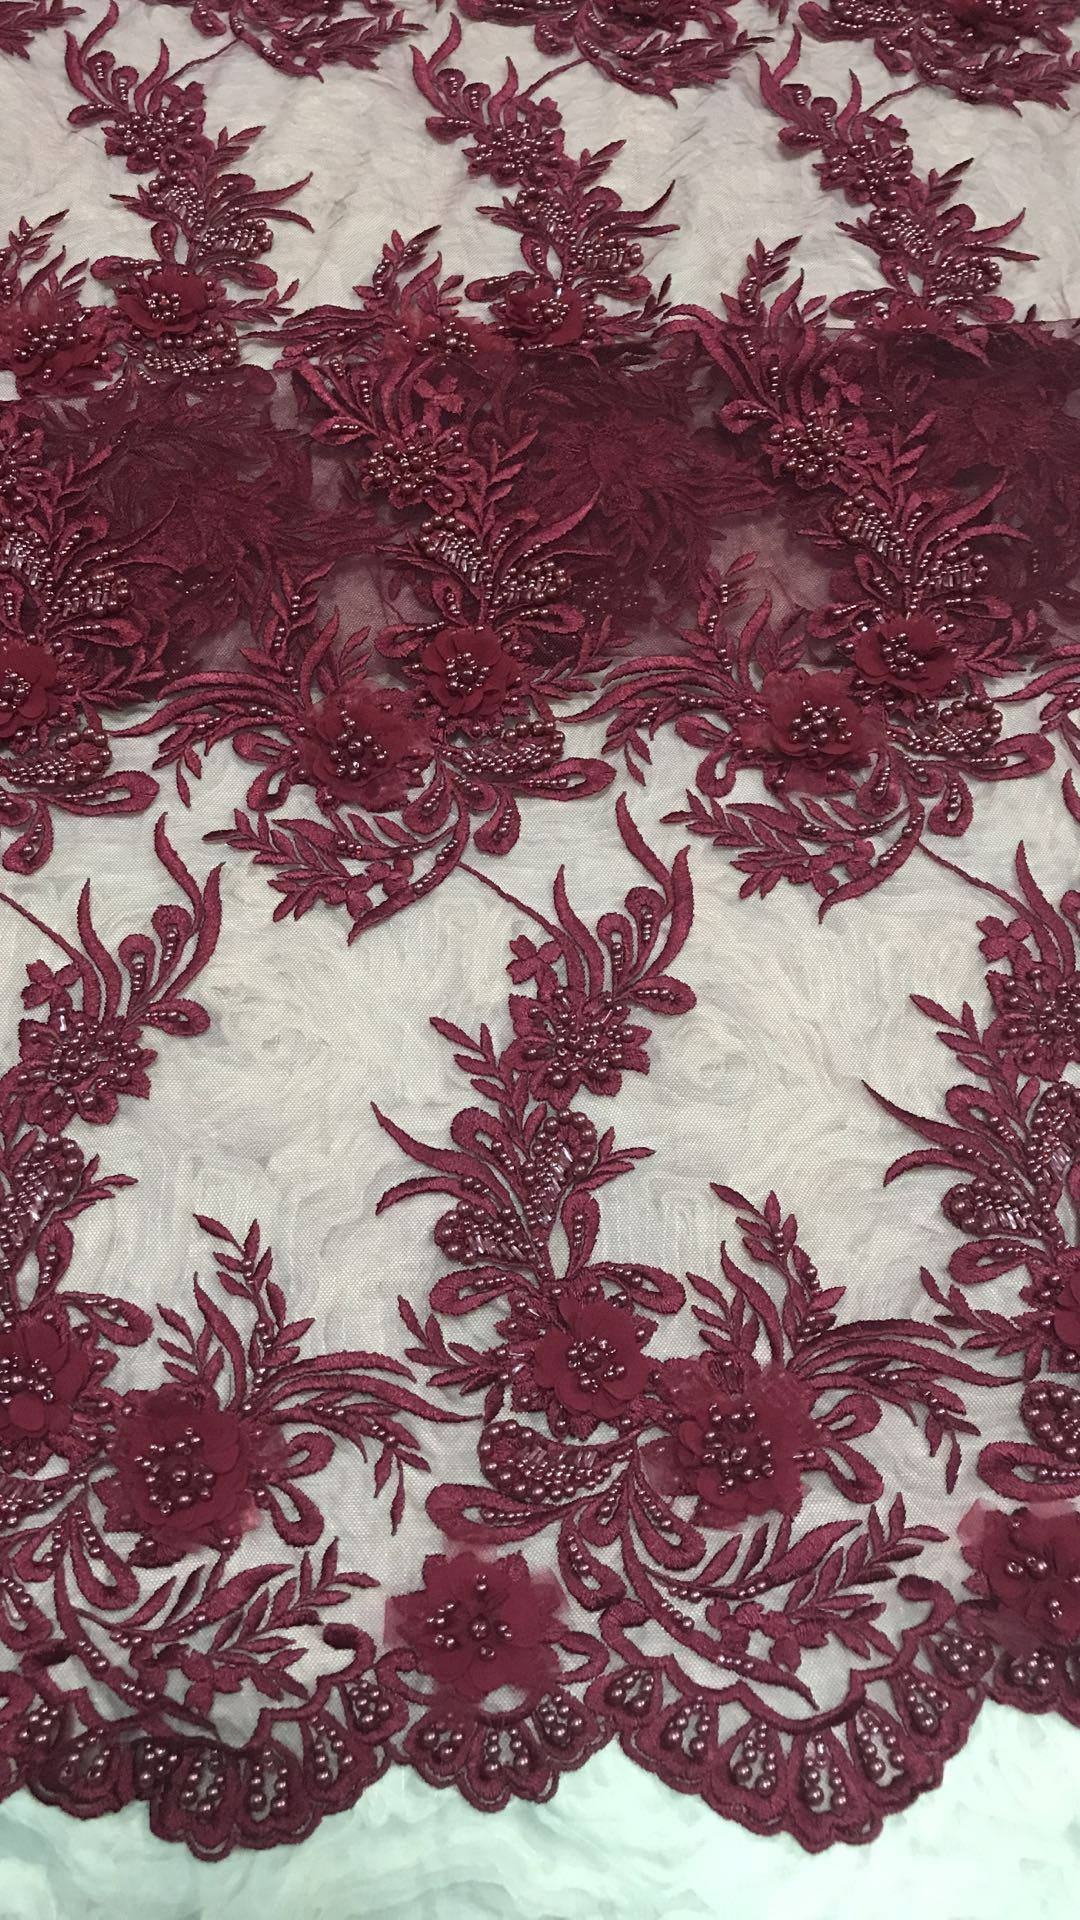 wine red lace fabric with 3D flowers, heavy embroidered lace fabric with 3D flowers, heavy bead lace fabric for bridal, tulle lace fabric